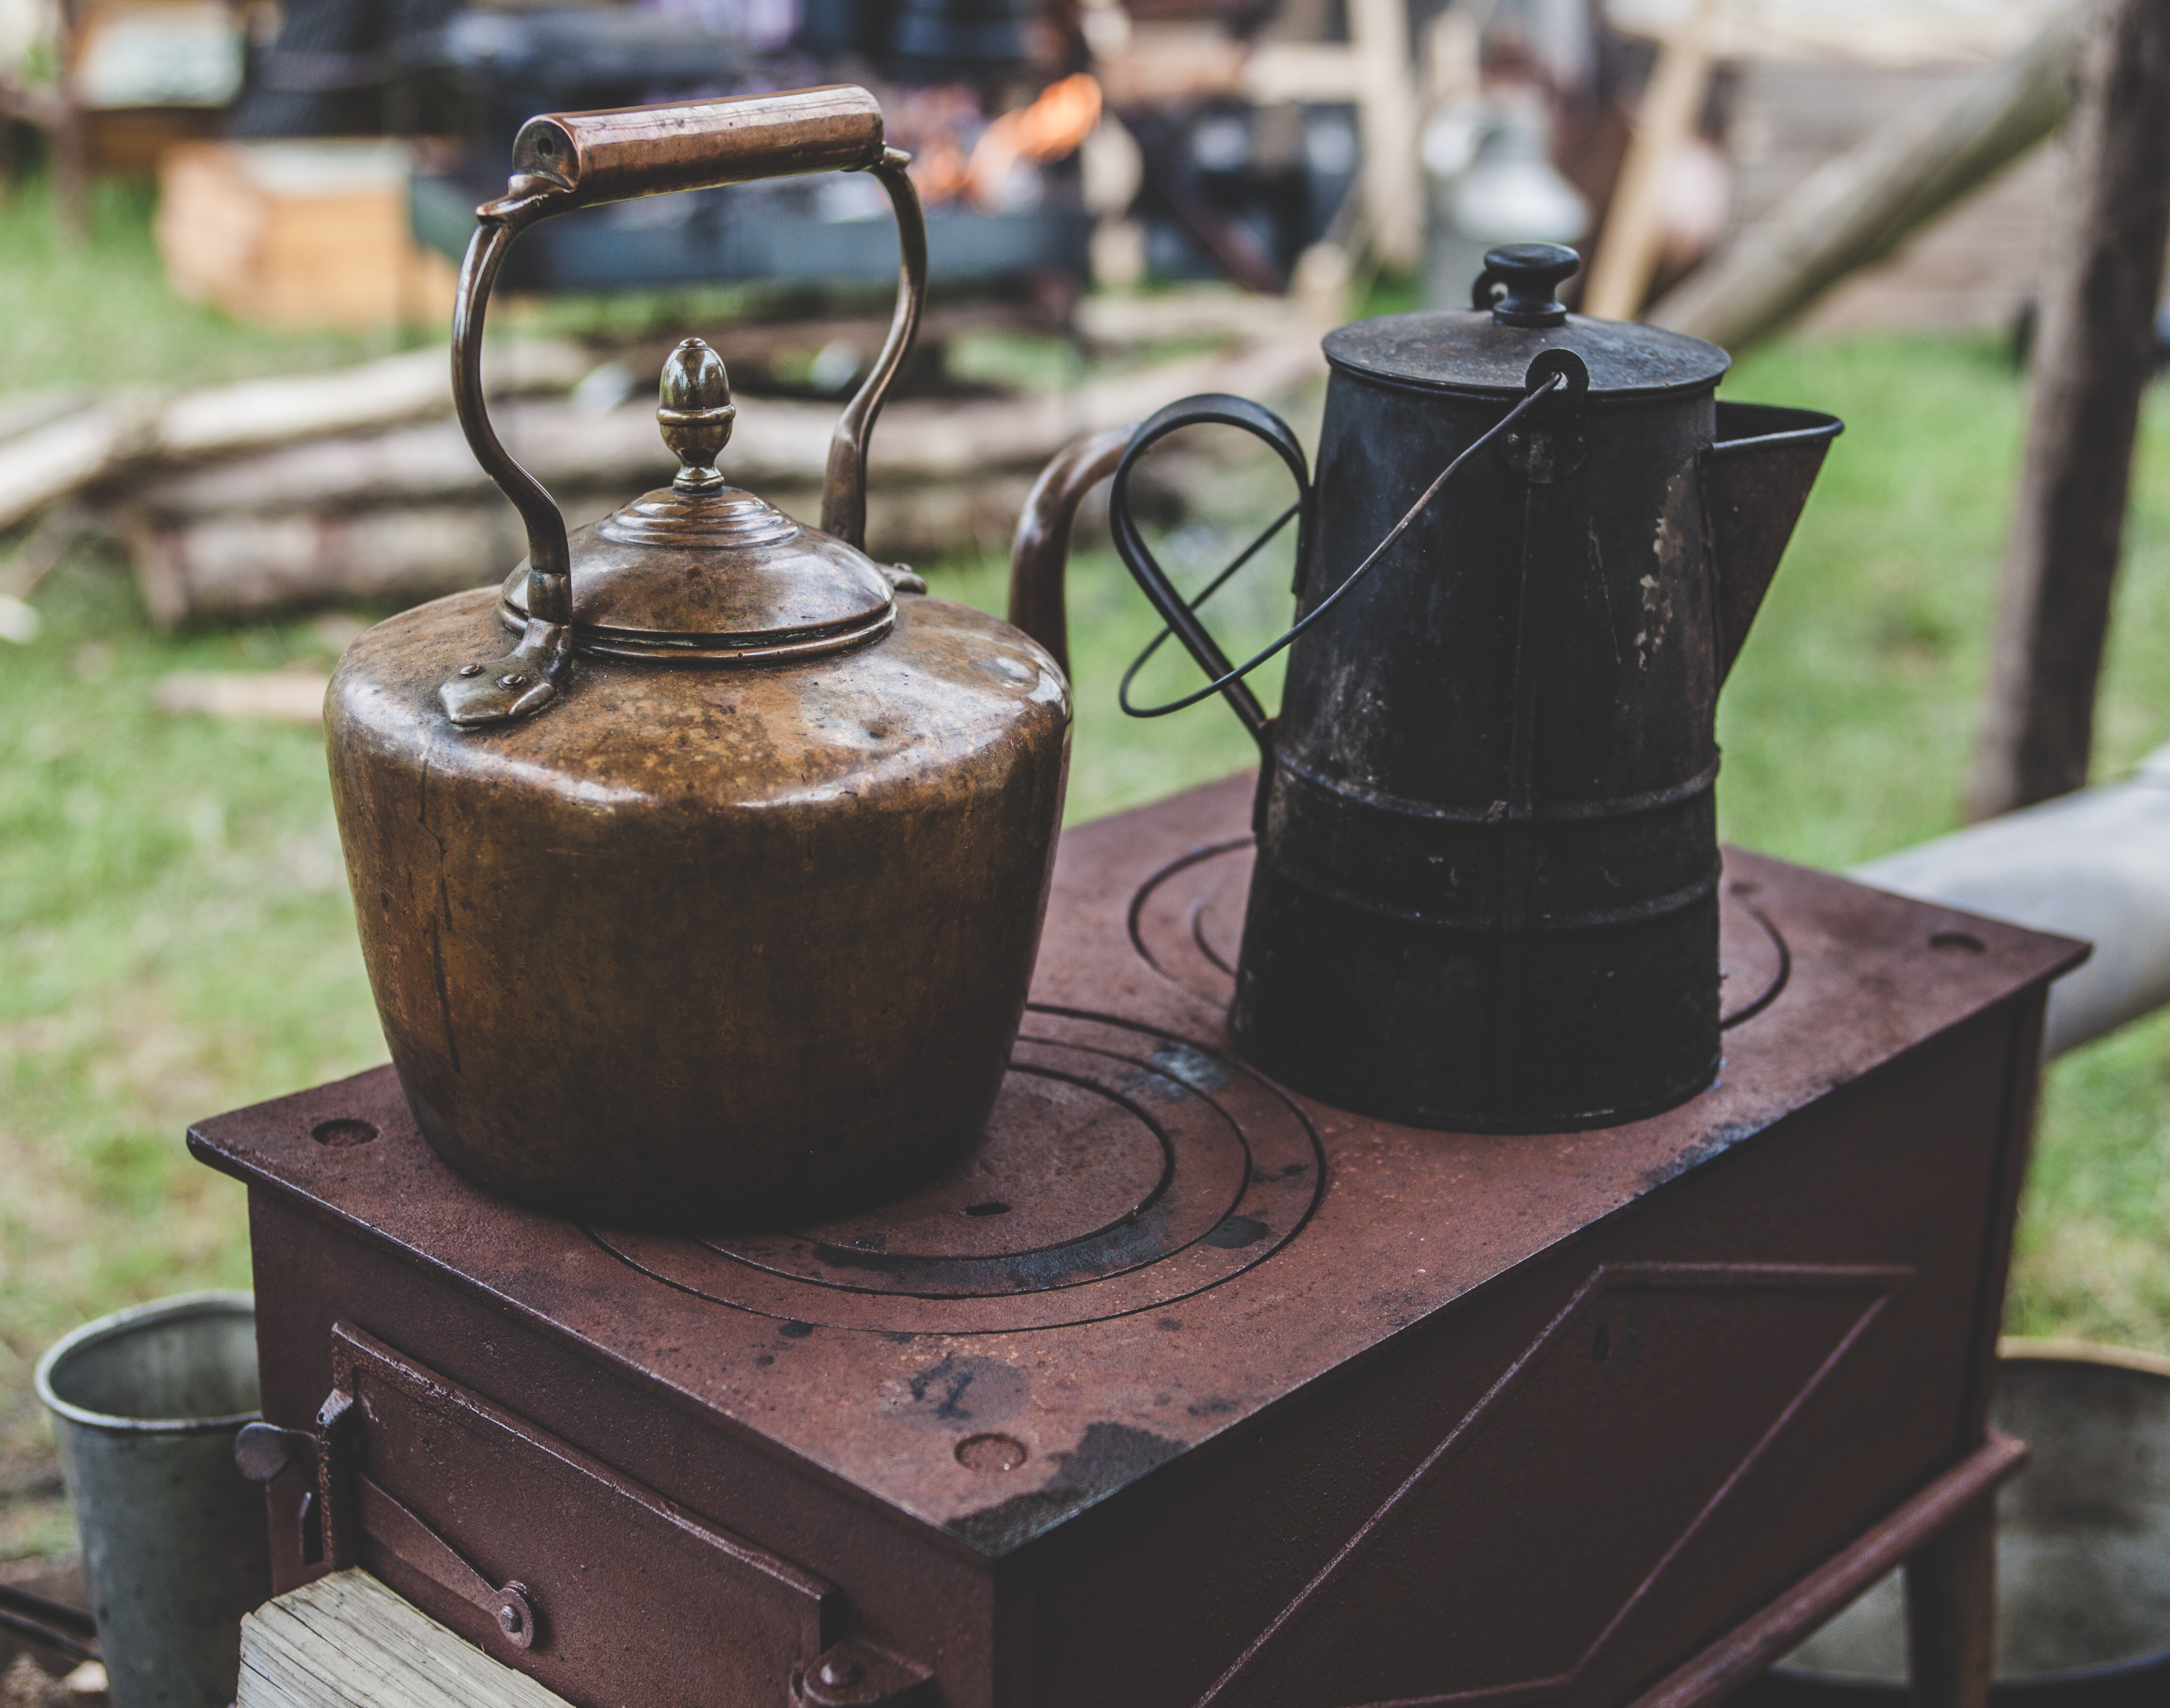 Rustic kettles on top of an antique stove outdoors